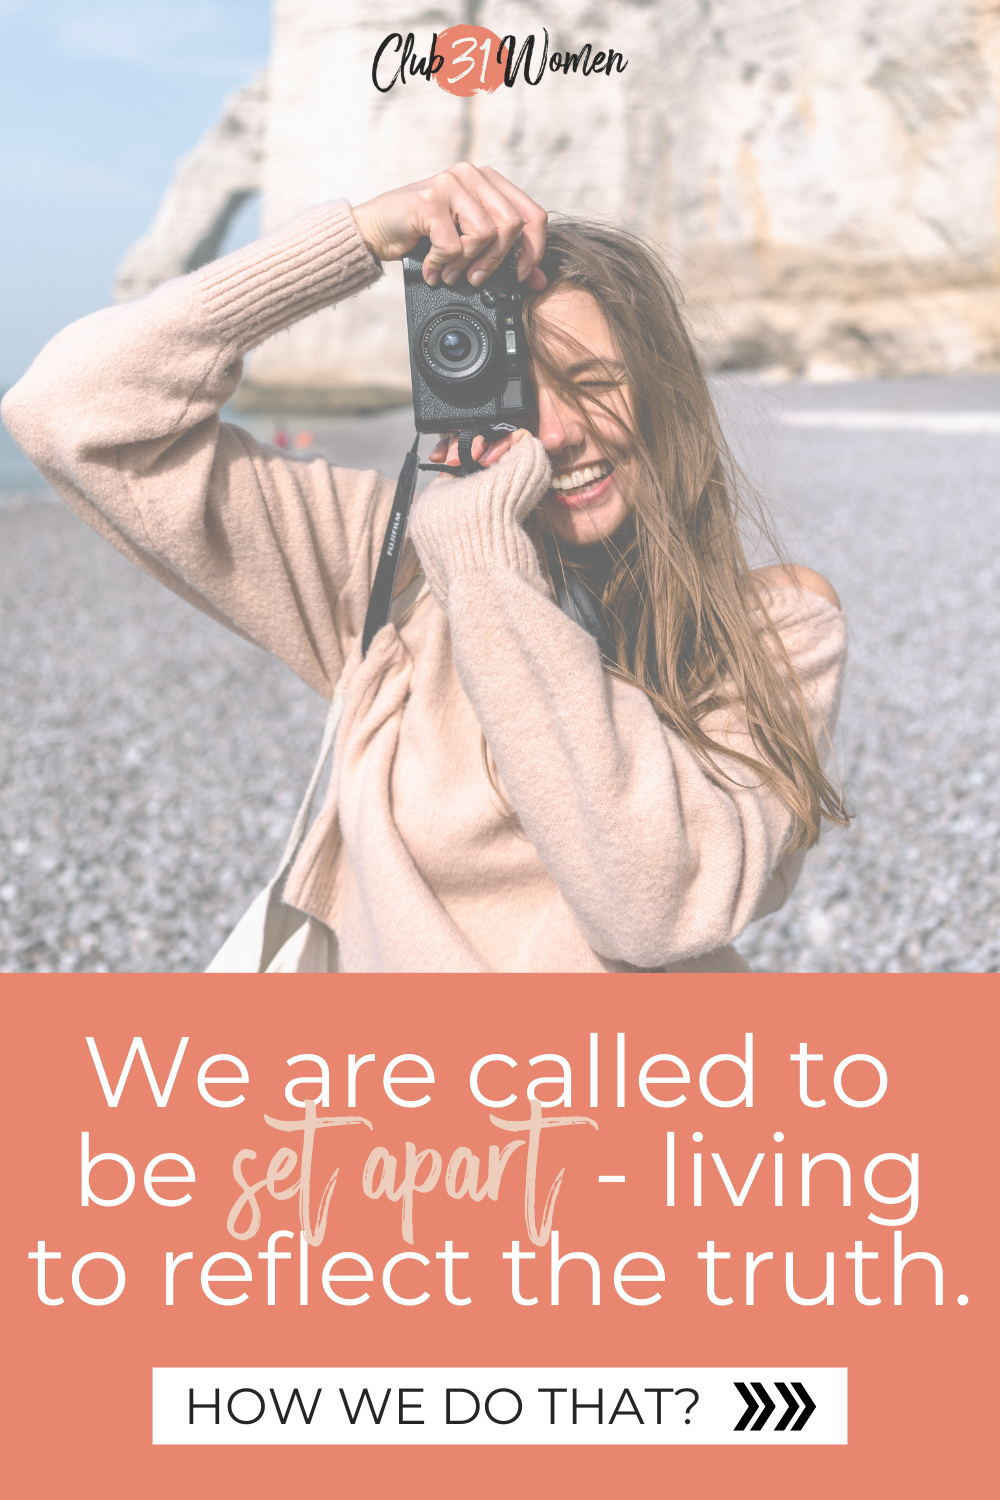 How do we long for a life in a better country? It often brings with it a heaviness that seems constant and keeps getting heavier. via @Club31Women